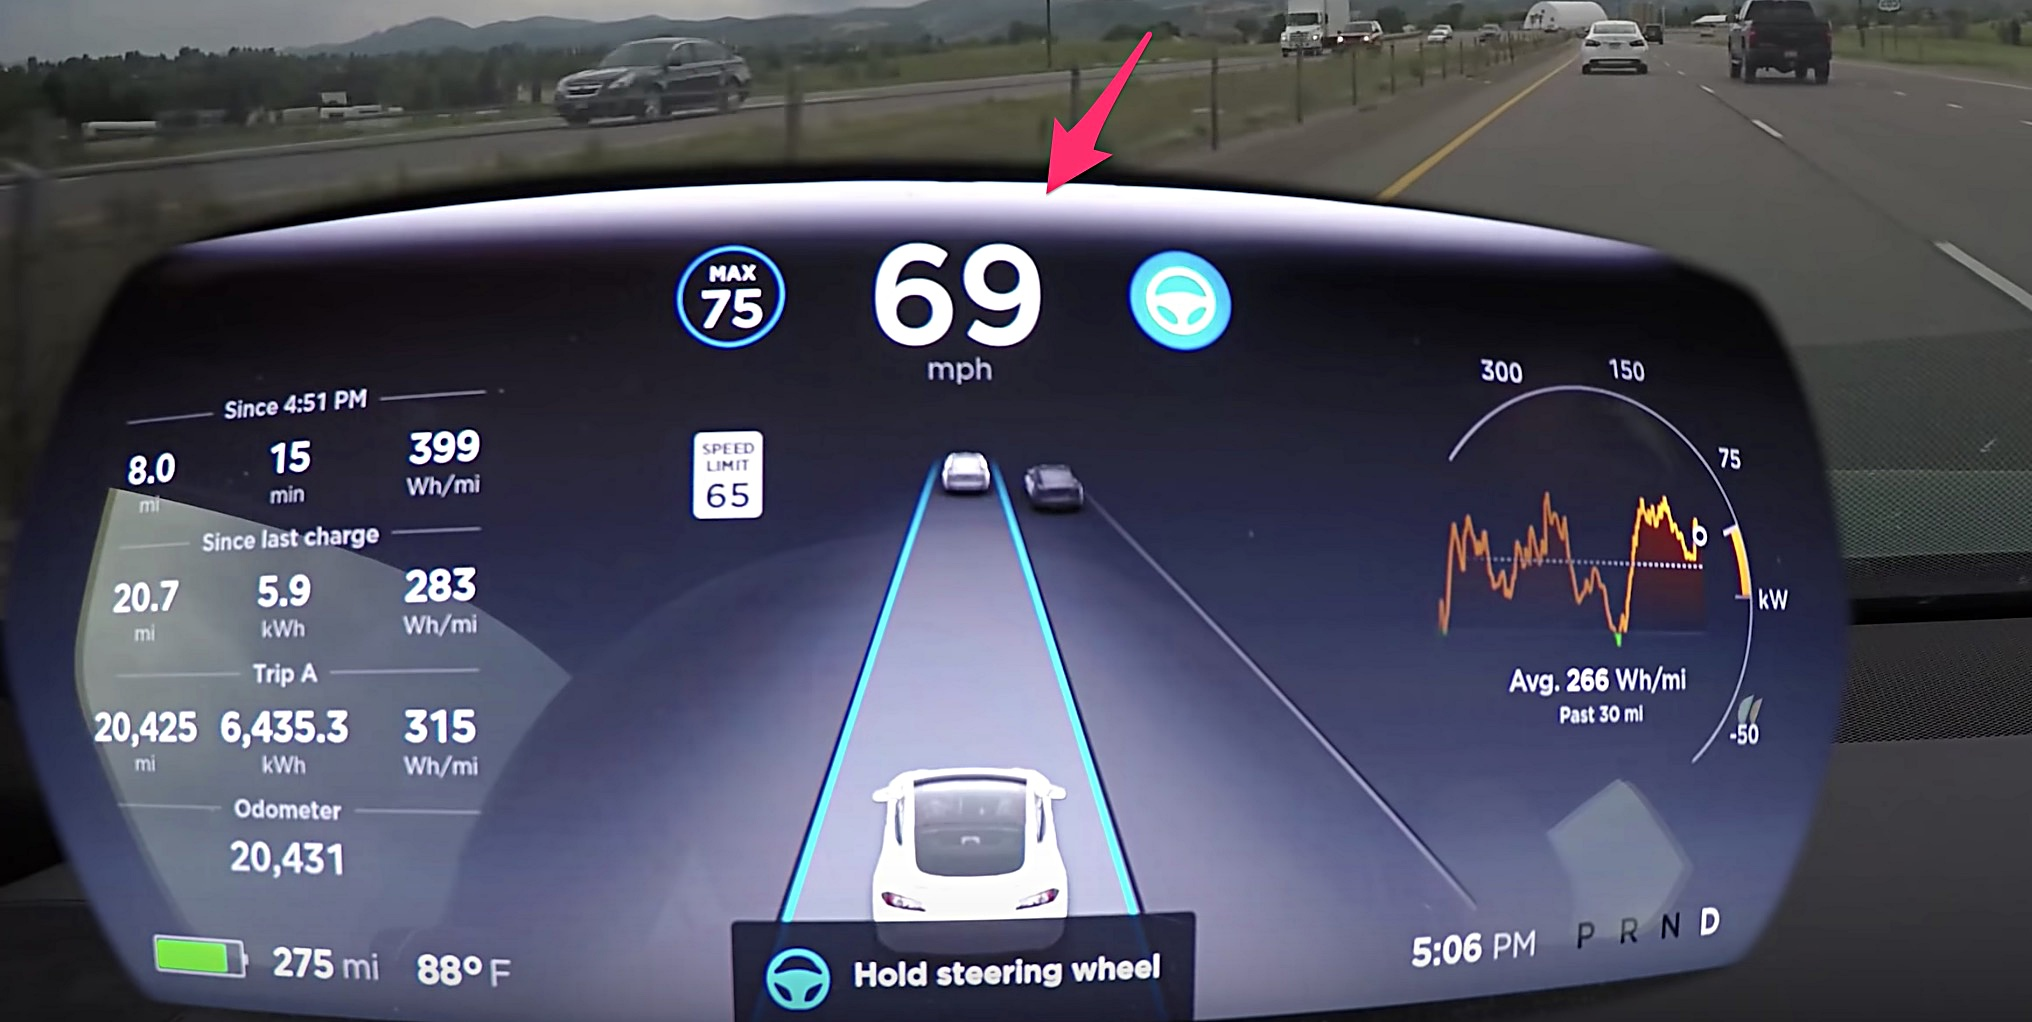 autopilot-hold-steering-wheel-alert-nag